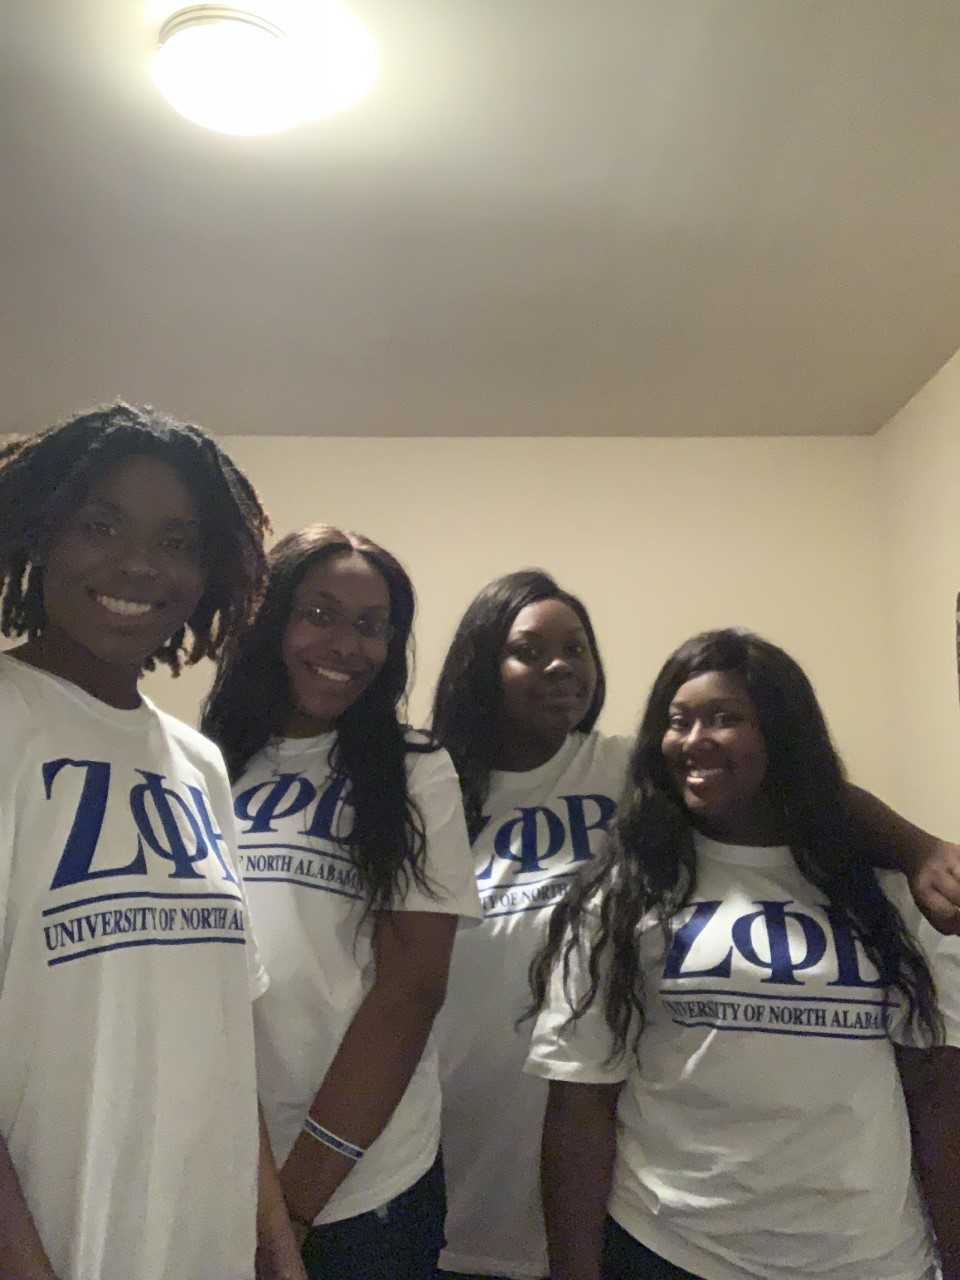 61ade702ed8a0c Zeta Phi Beta has chartered hundreds of chapters worldwide and has a  membership of 100